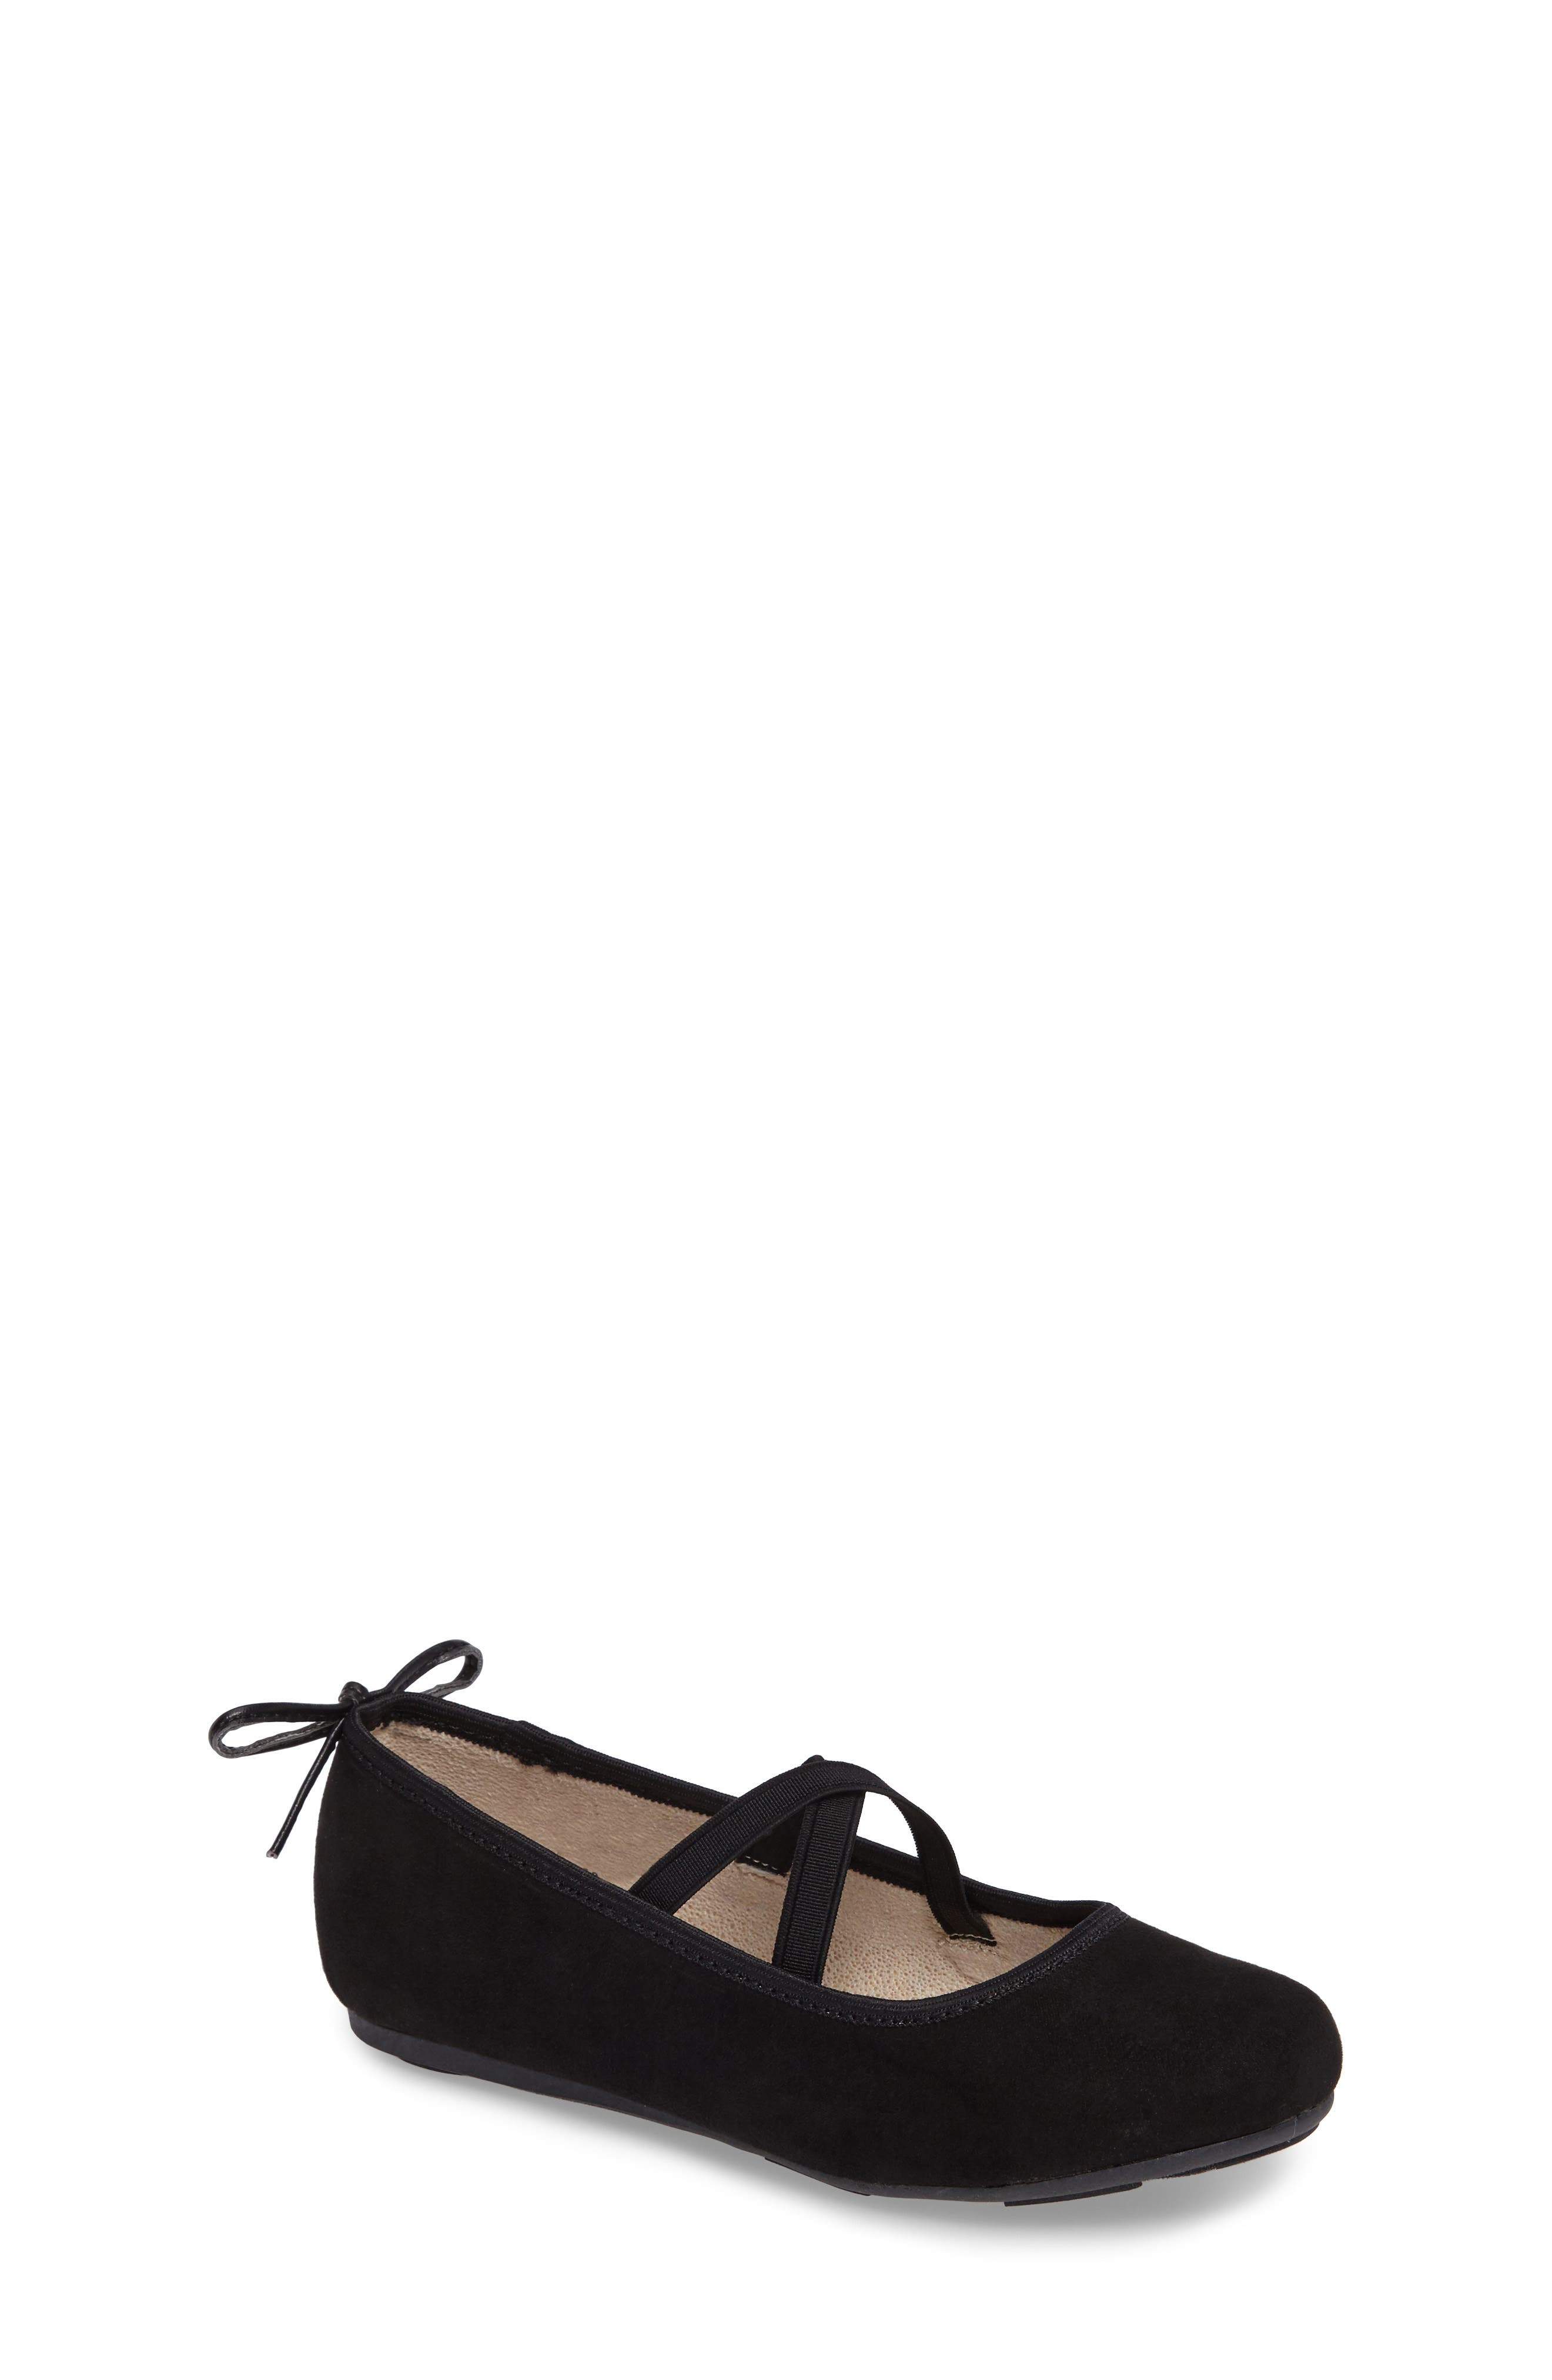 girls u0027 stuart weitzman shoes nordstrom